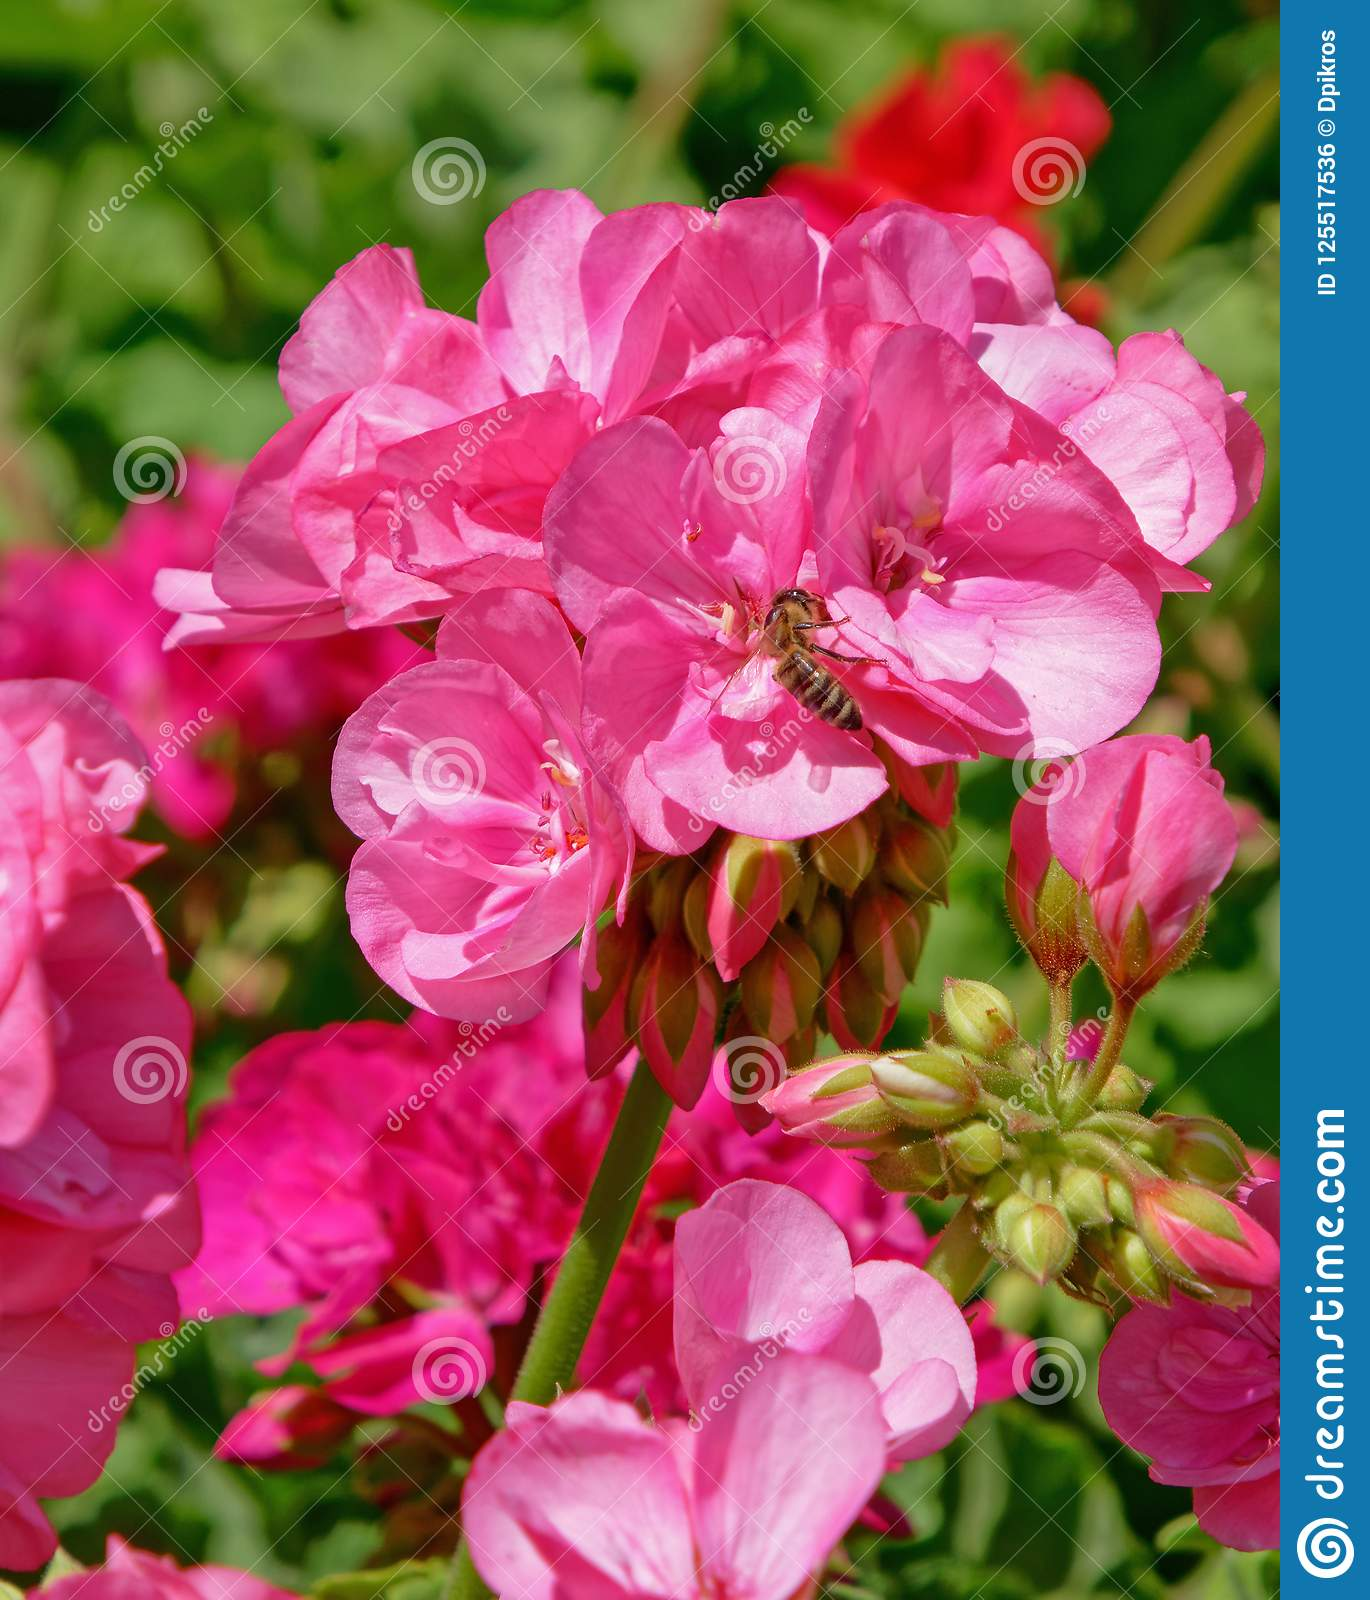 Colorful Pink Geranium Flowers In The Garden Stock Photo Image Of